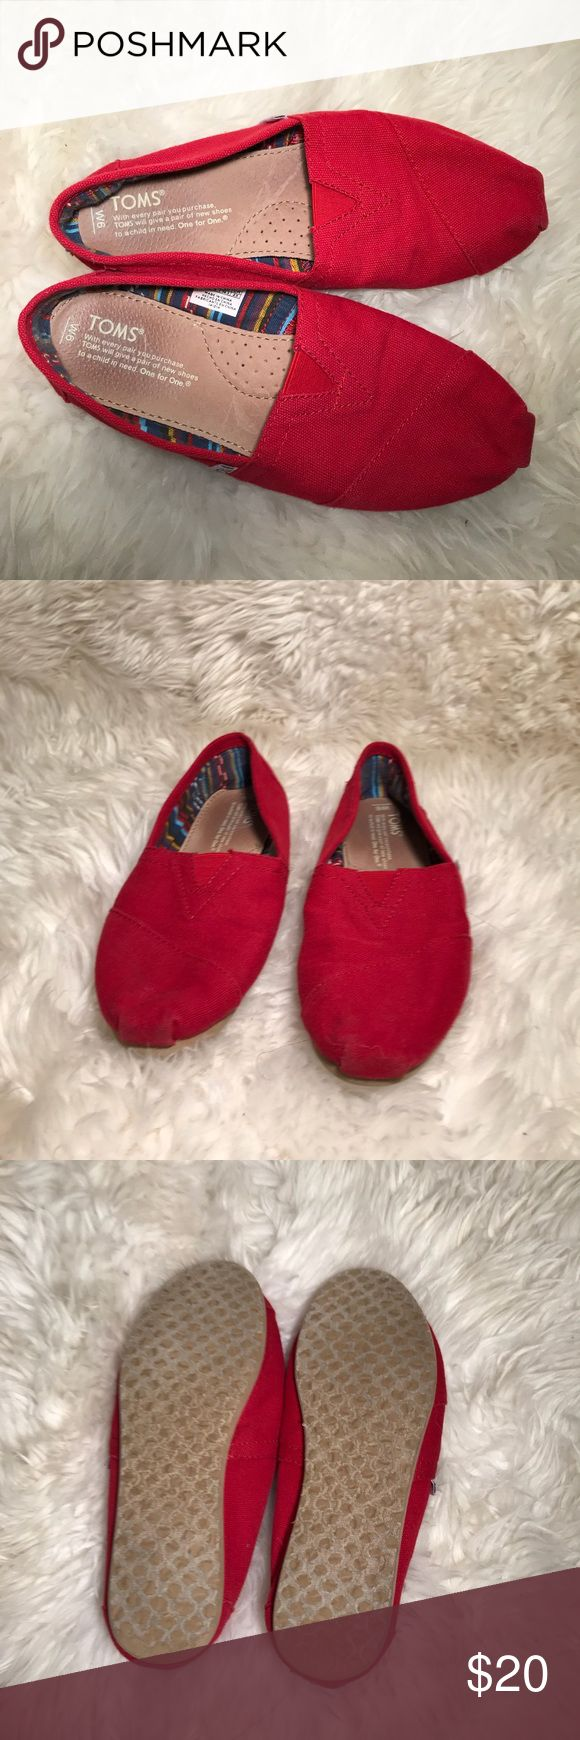 red toms only worn a few times, excellent condition! willing to bargain! Toms Shoes